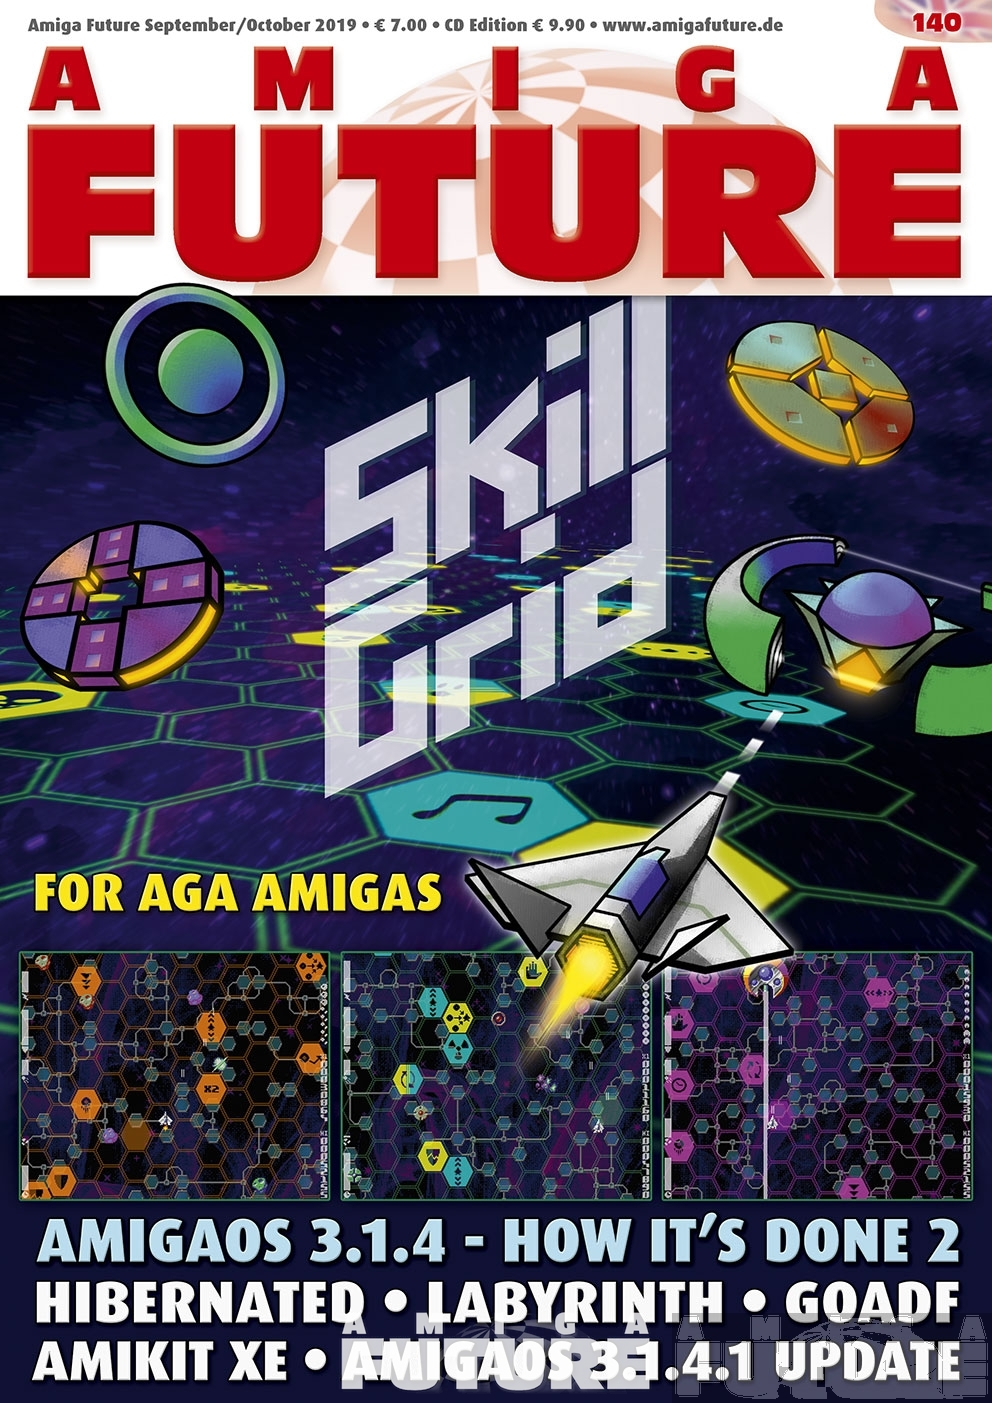 Amiga Future Issue 140 (English)